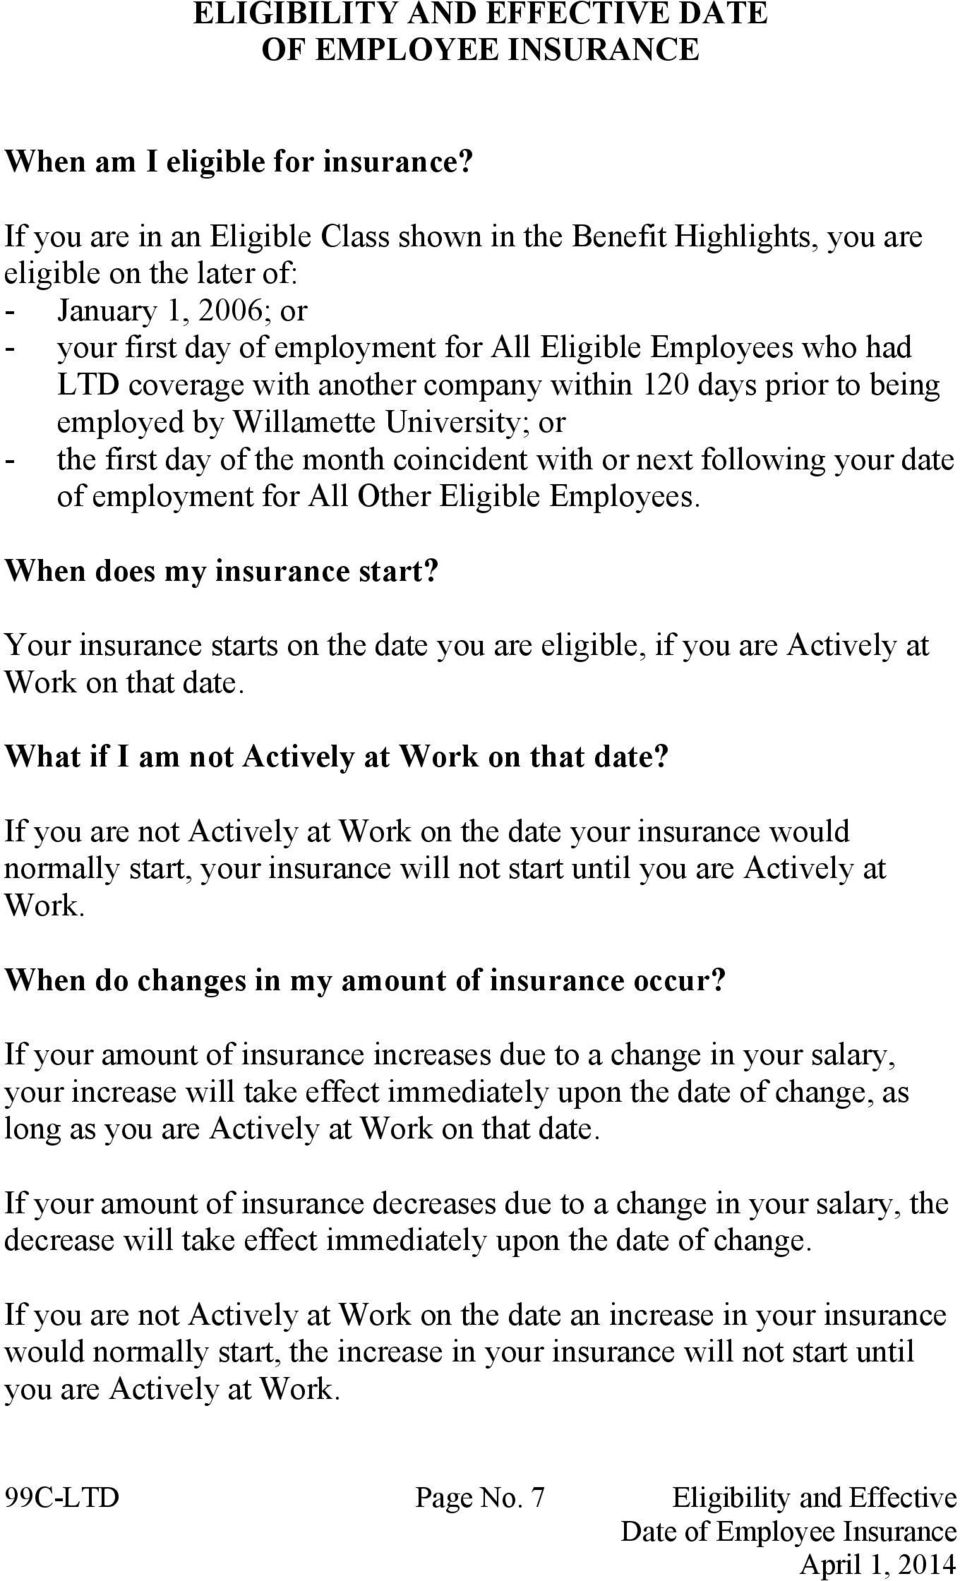 with another company within 120 days prior to being employed by Willamette University; or - the first day of the month coincident with or next following your date of employment for All Other Eligible